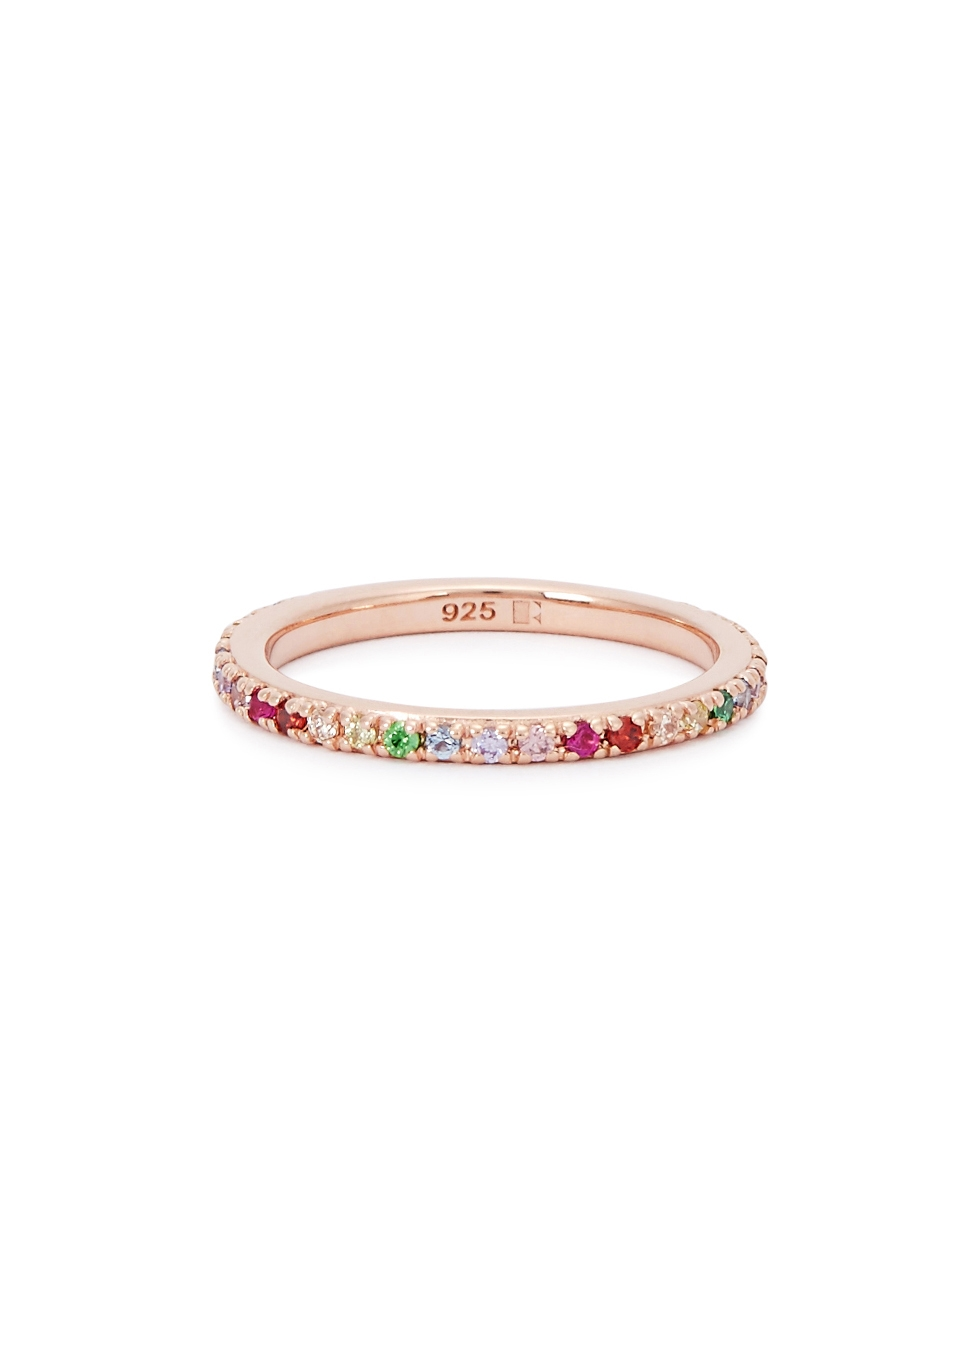 ROSIE FORTESCUE 18Ct Rose Gold-Plated Sterling Silver Ring